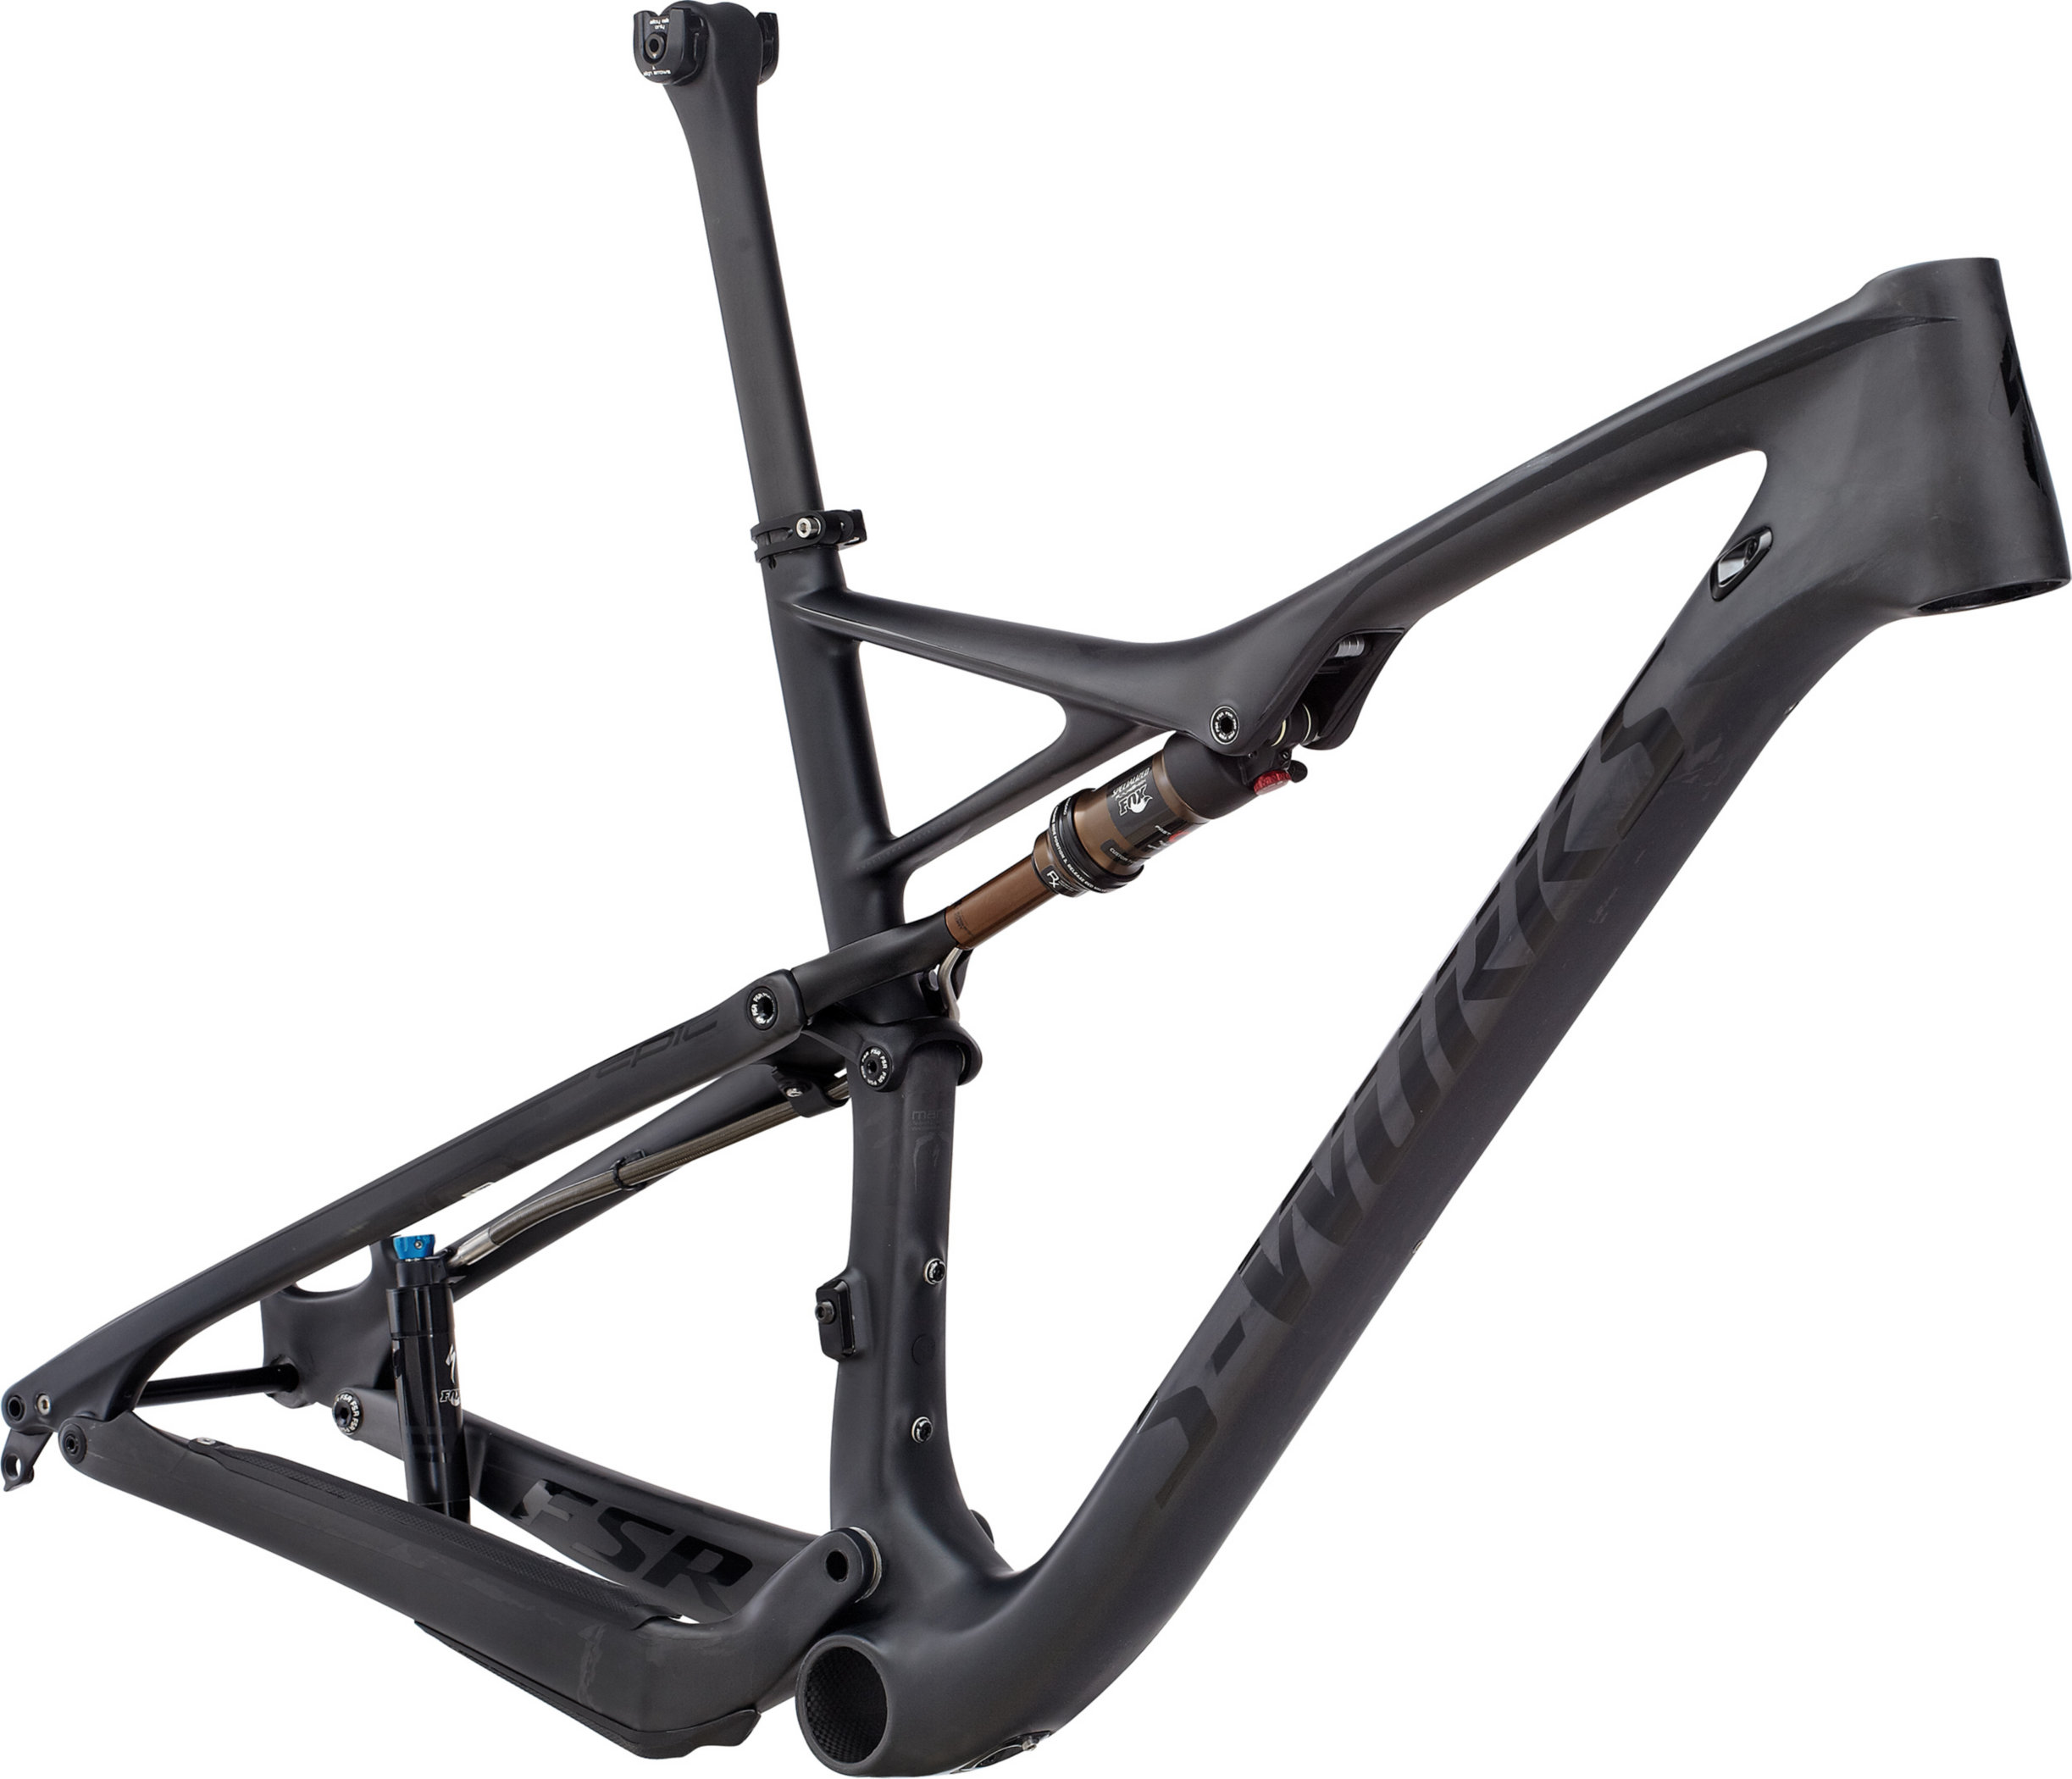 SPECIALIZED SW EPIC FSR CARBON 29 FRM CARB S - SPECIALIZED SW EPIC FSR CARBON 29 FRM CARB S